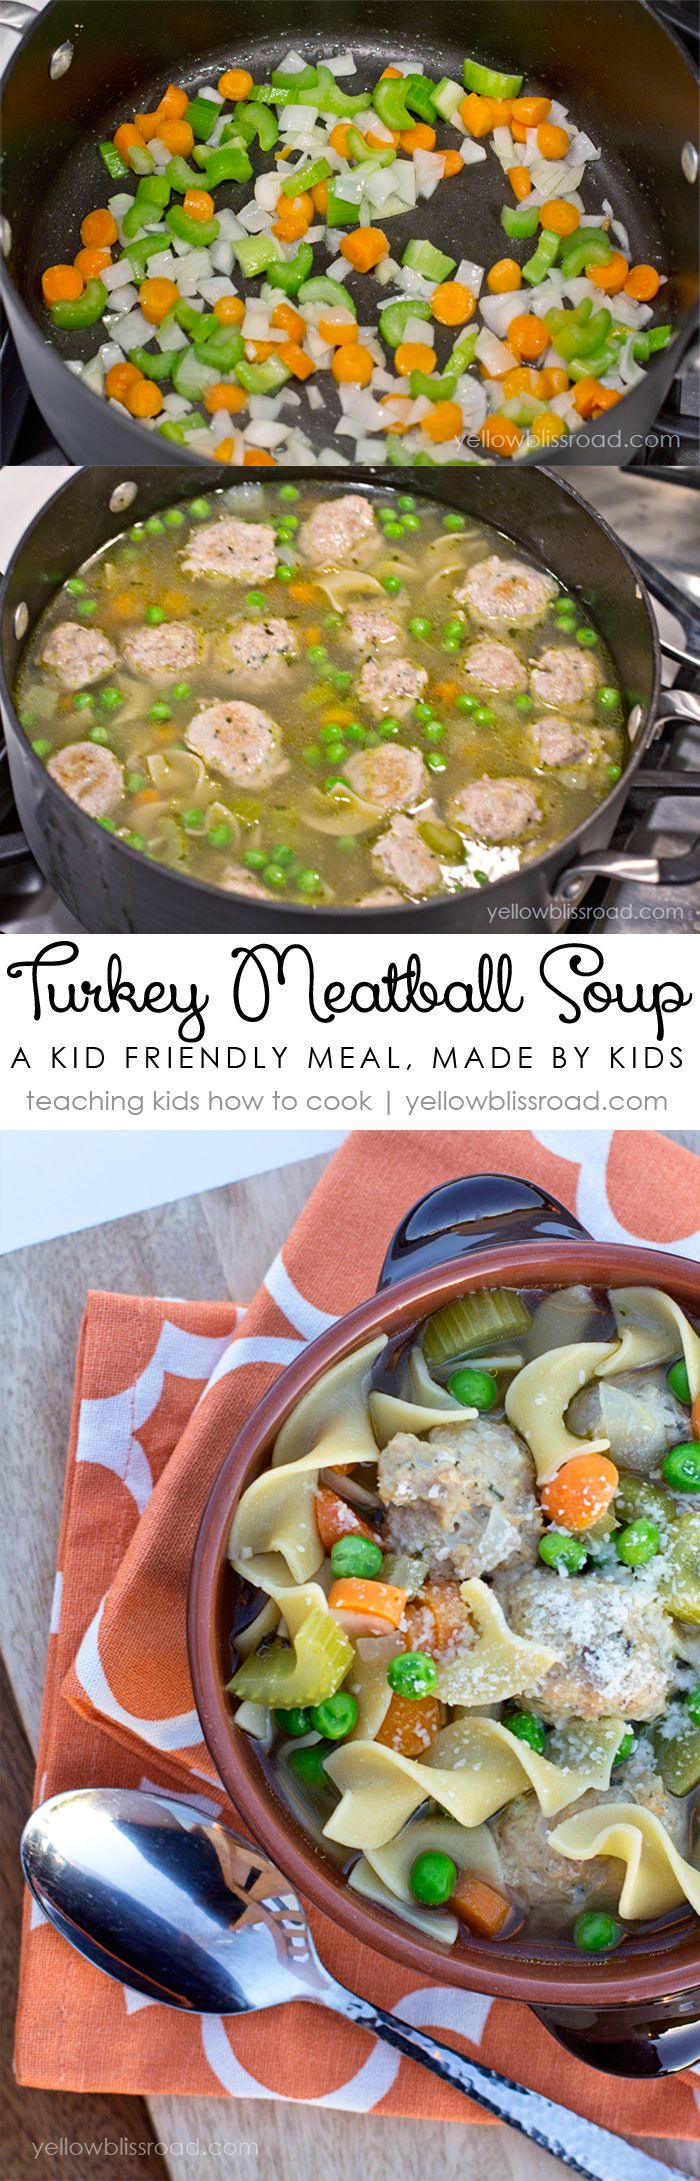 Turkey Meatball Soup - A Perfect, Kid Friendly, Fall Meal